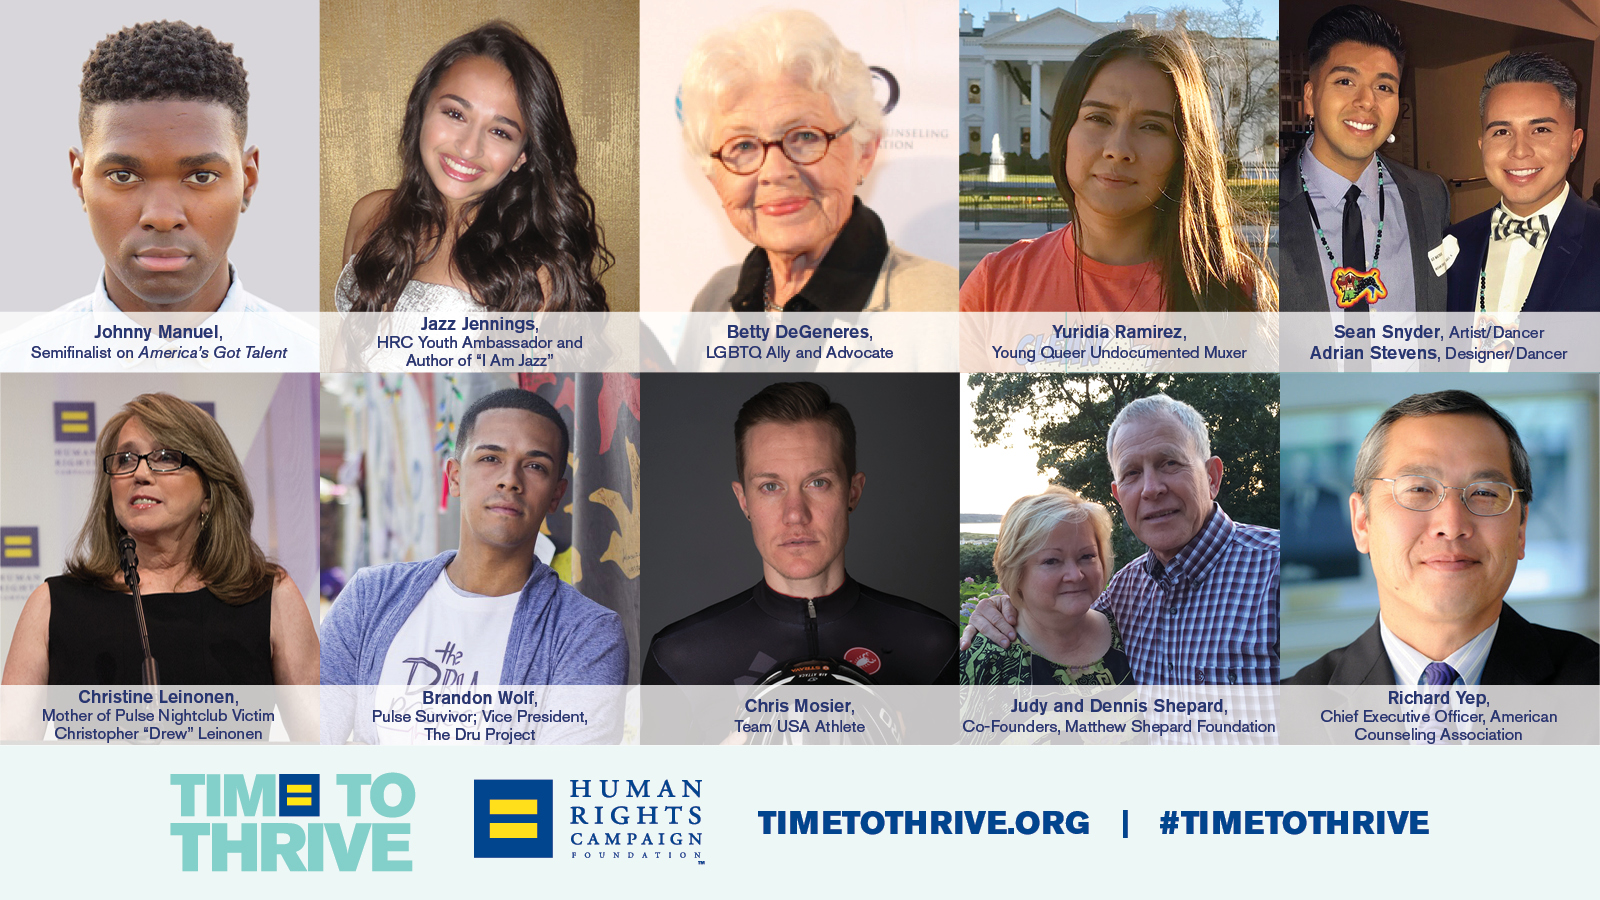 HRC Foundation to Host Time to THRIVE Conference on Youth Safety and Inclusion Feb. 16-18